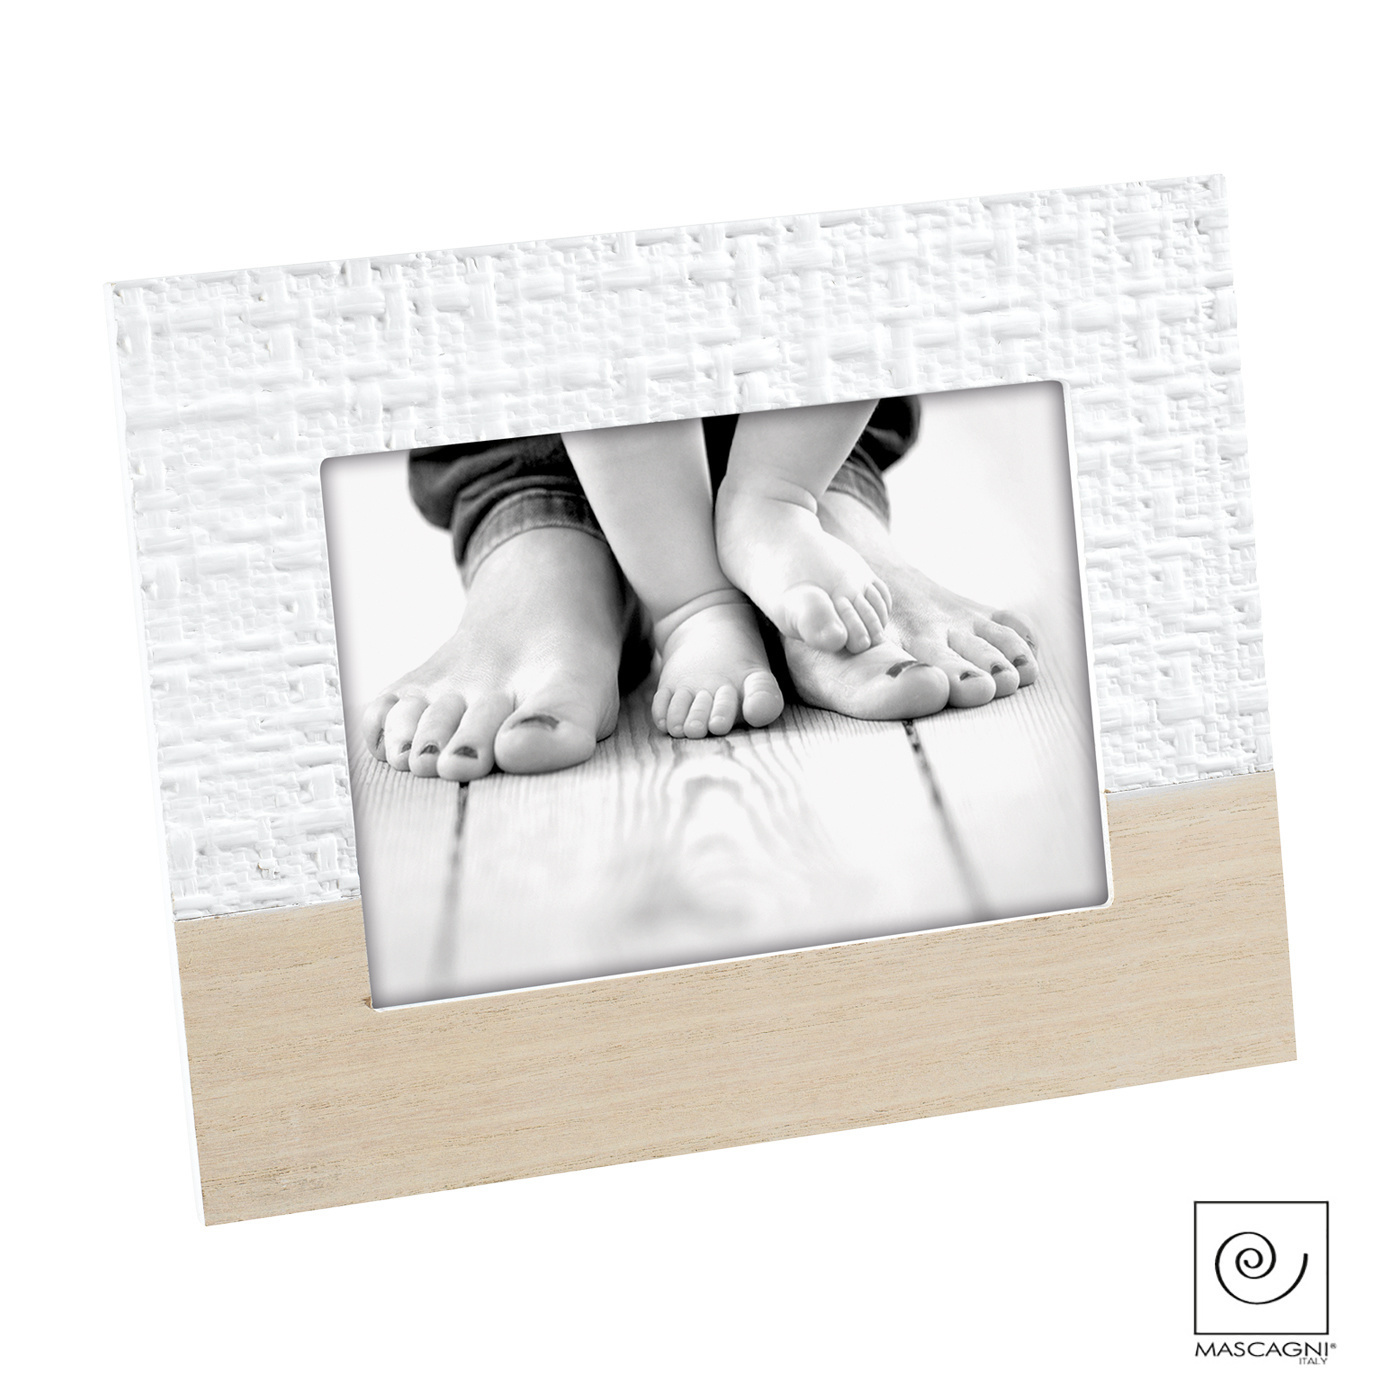 Art Mascagni A1071 PHOTO FRAME 10X15 - COL. WHITE